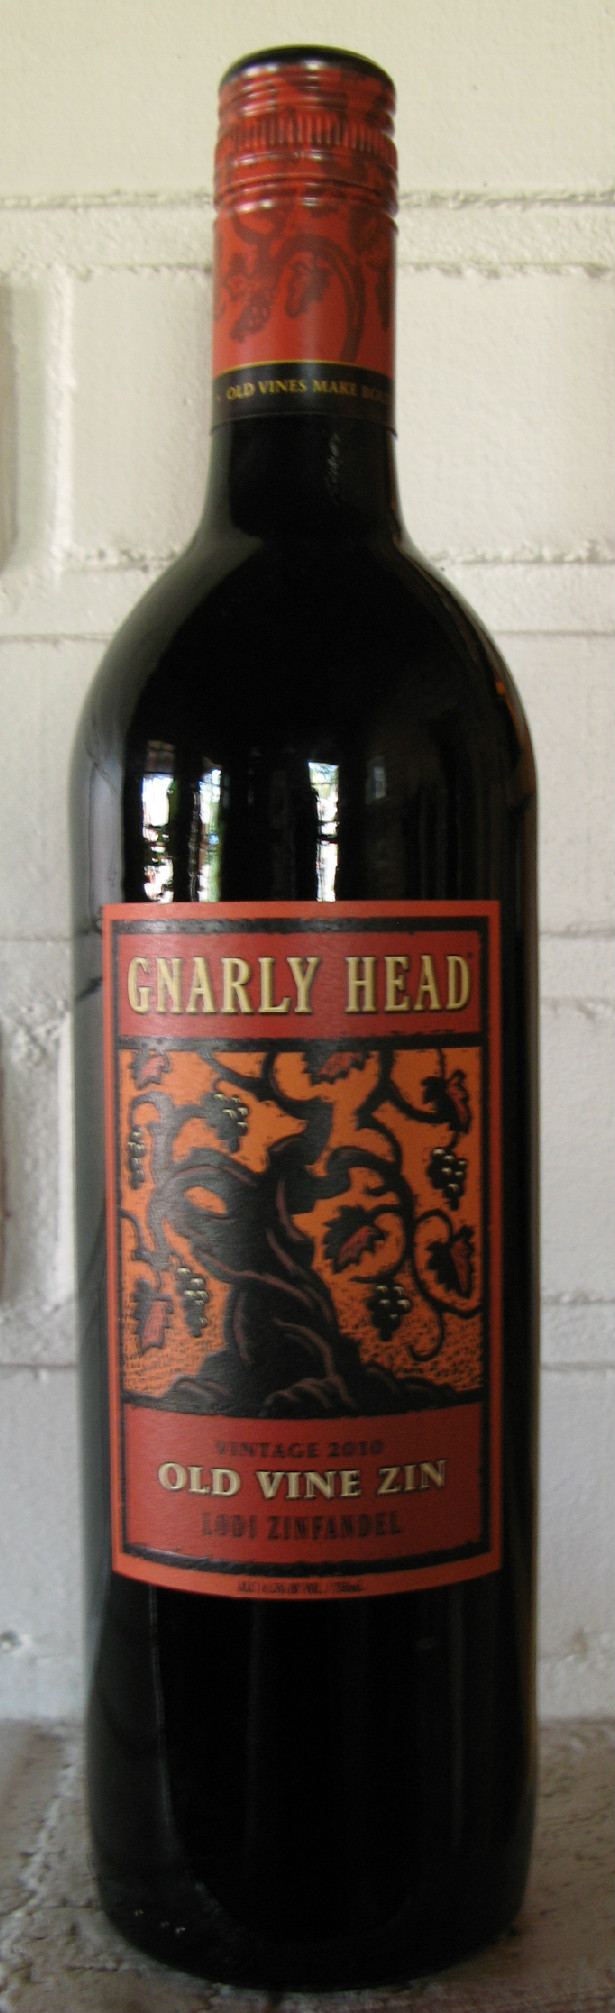 gnarly-head-zinfandel-2010